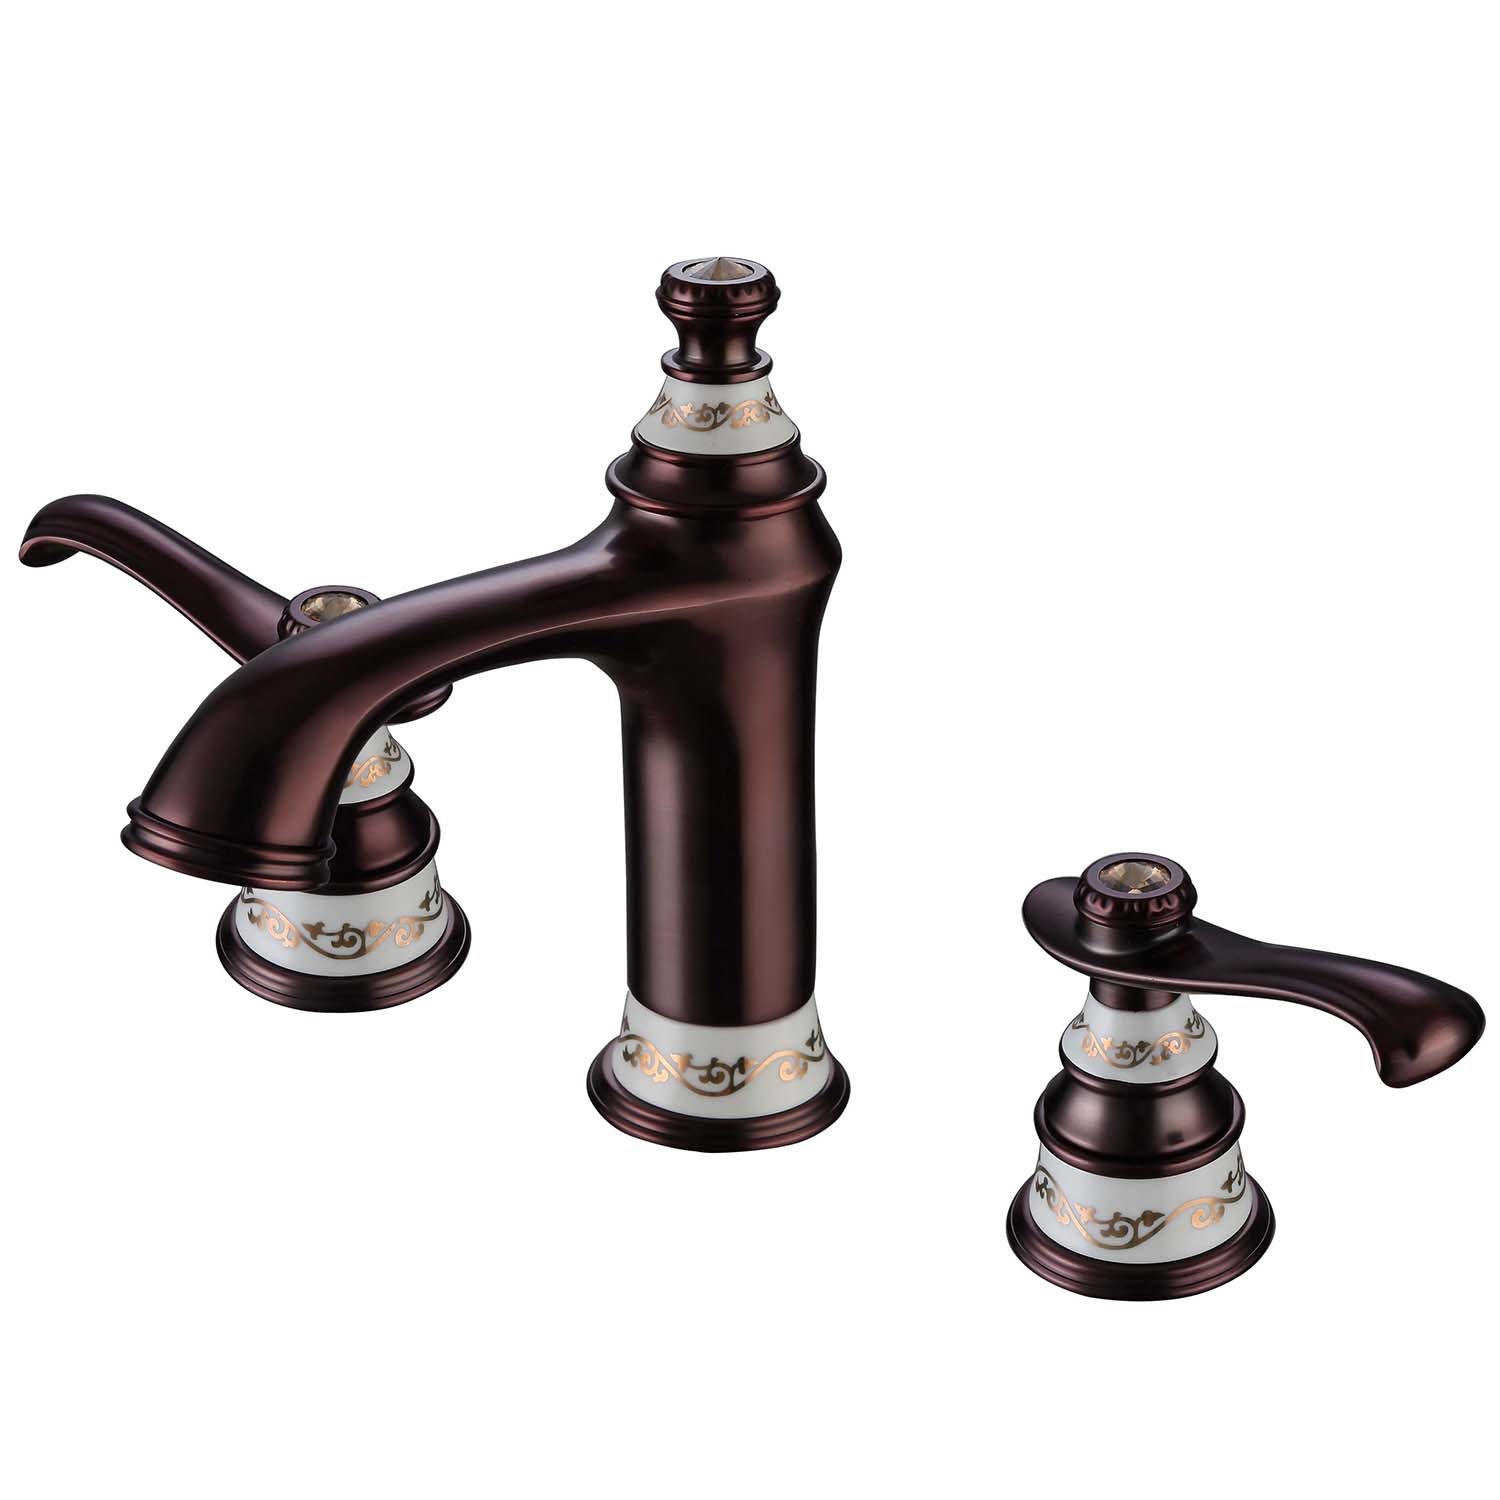 Faucets Bathroom Sink Faucets Modern Orb Bathroom Sink Faucet 3 Hole Installation Double Handle